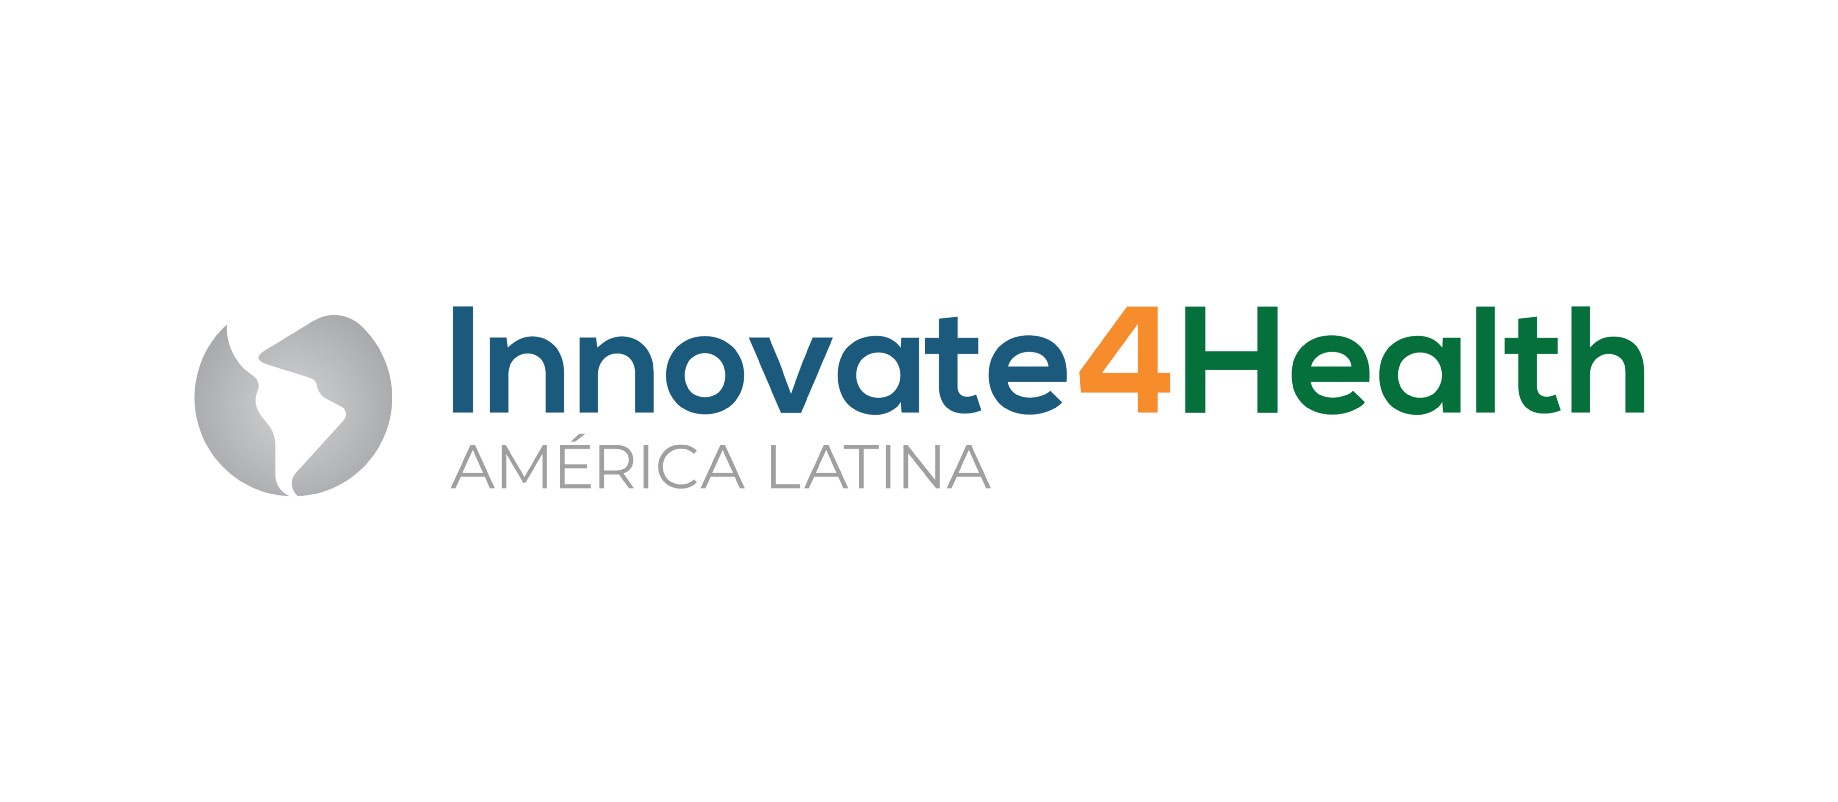 Innovate4Health Latin America - Innovate4Health - Medium